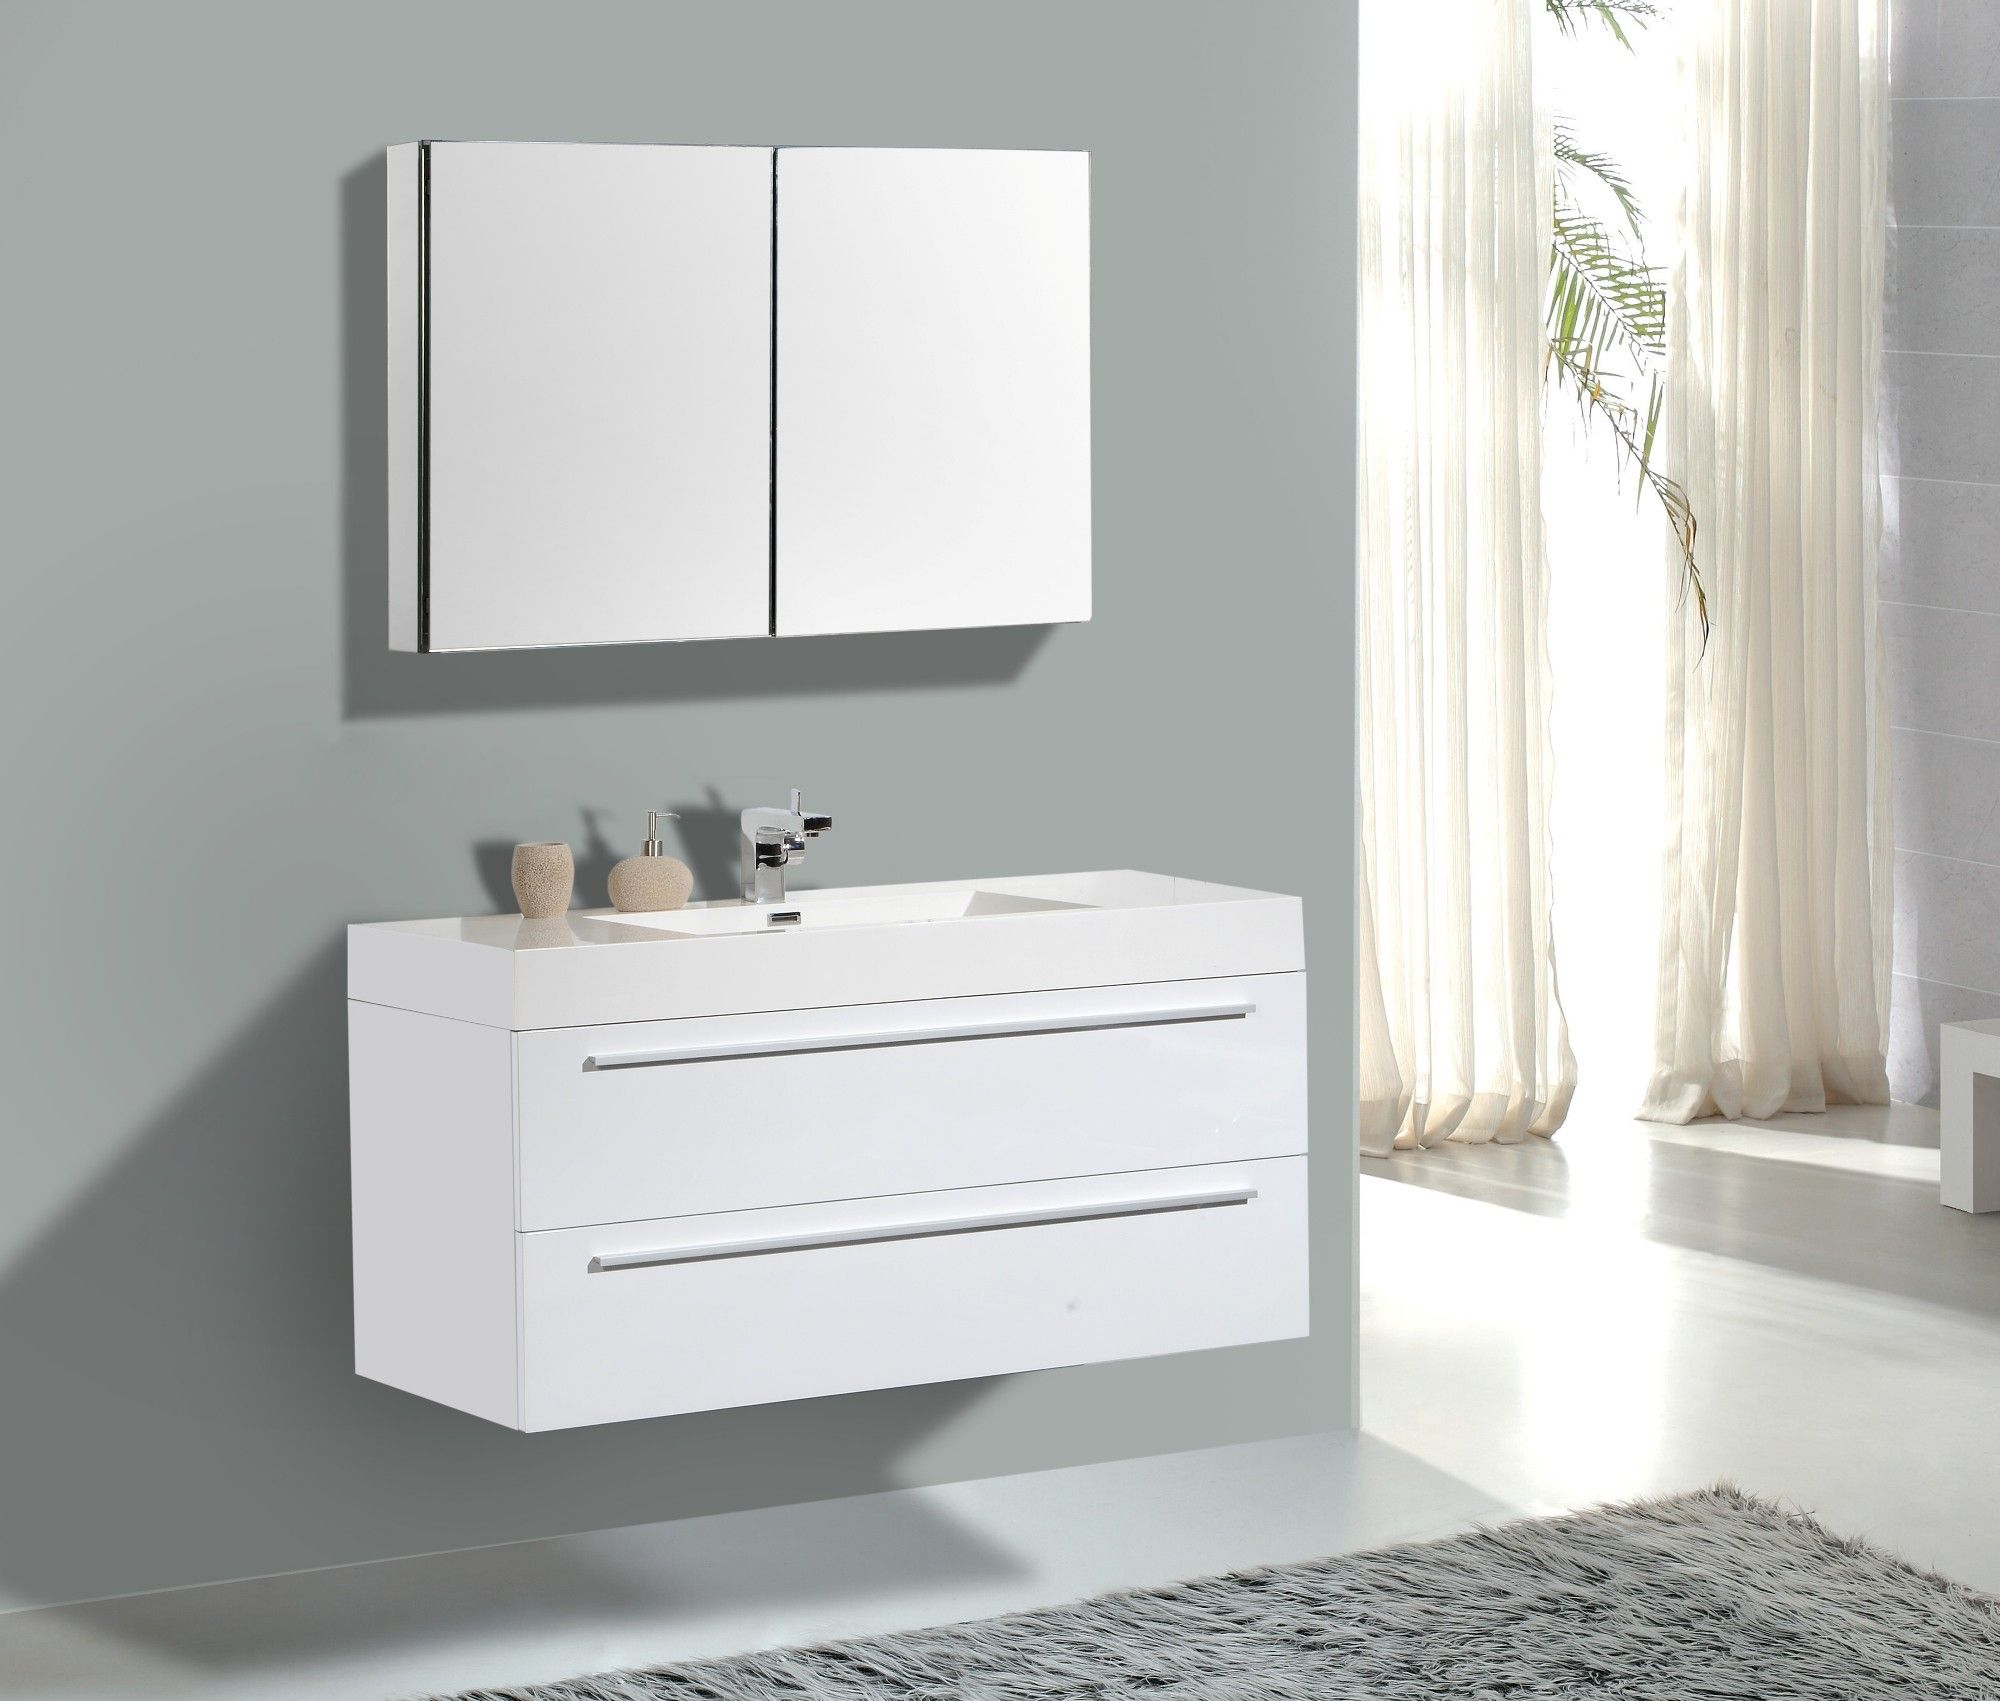 White Bathroom Vanity Ideas Aqua Decor Maya 47 Quot Modern Bathroom Vanity Set W Medicine